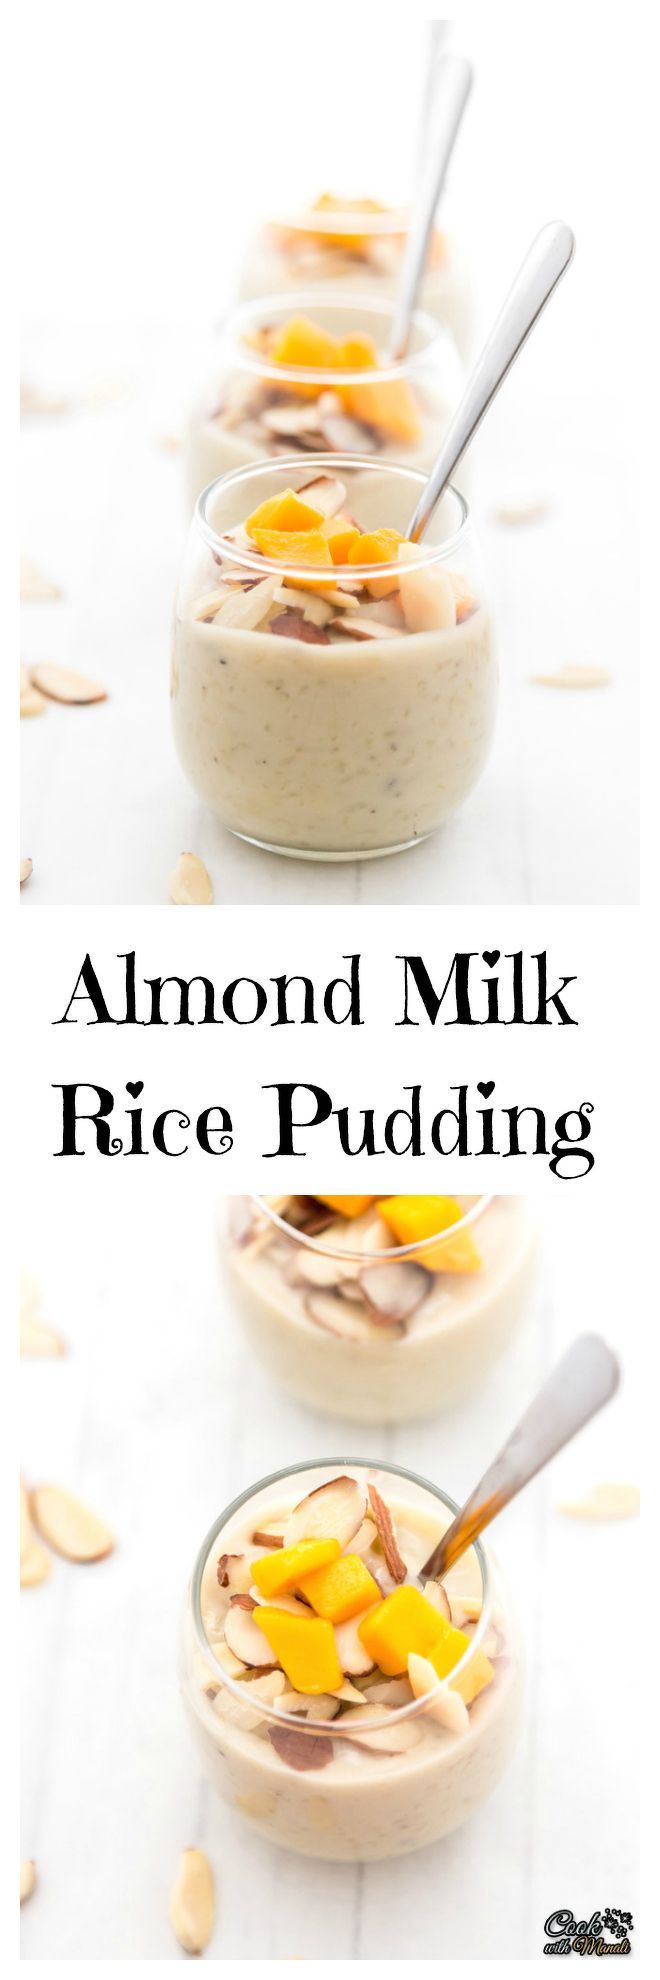 Almond Milk Rice Pudding flavored with cardamom, saffron & topped with nuts!